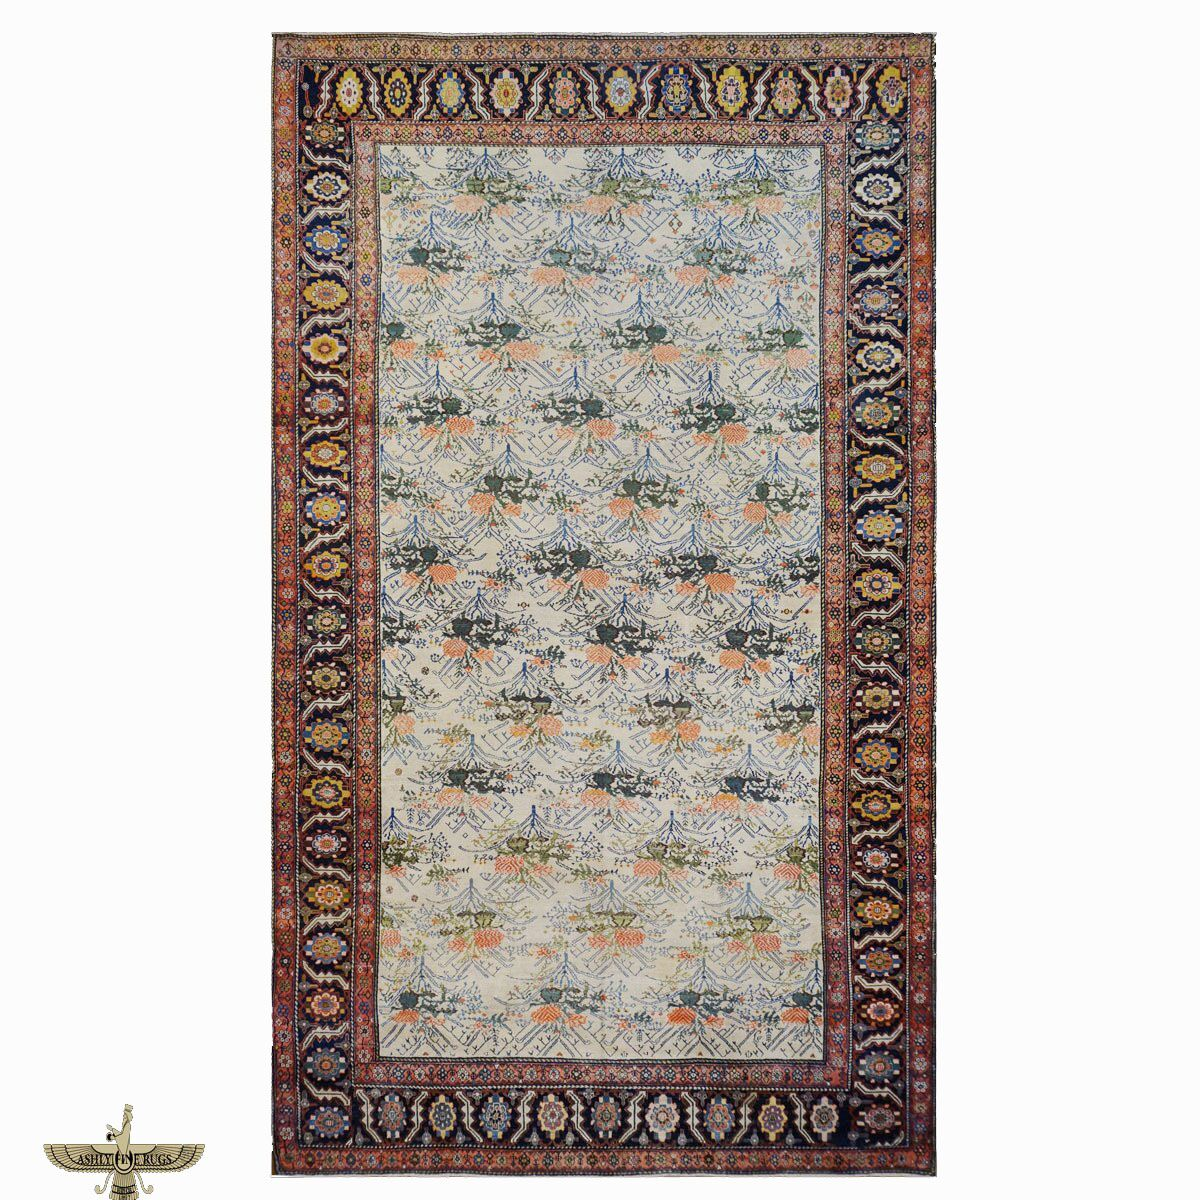 Area Rugs Malayer Persian 100 Wool Antique 9902772 Oversize Ivory